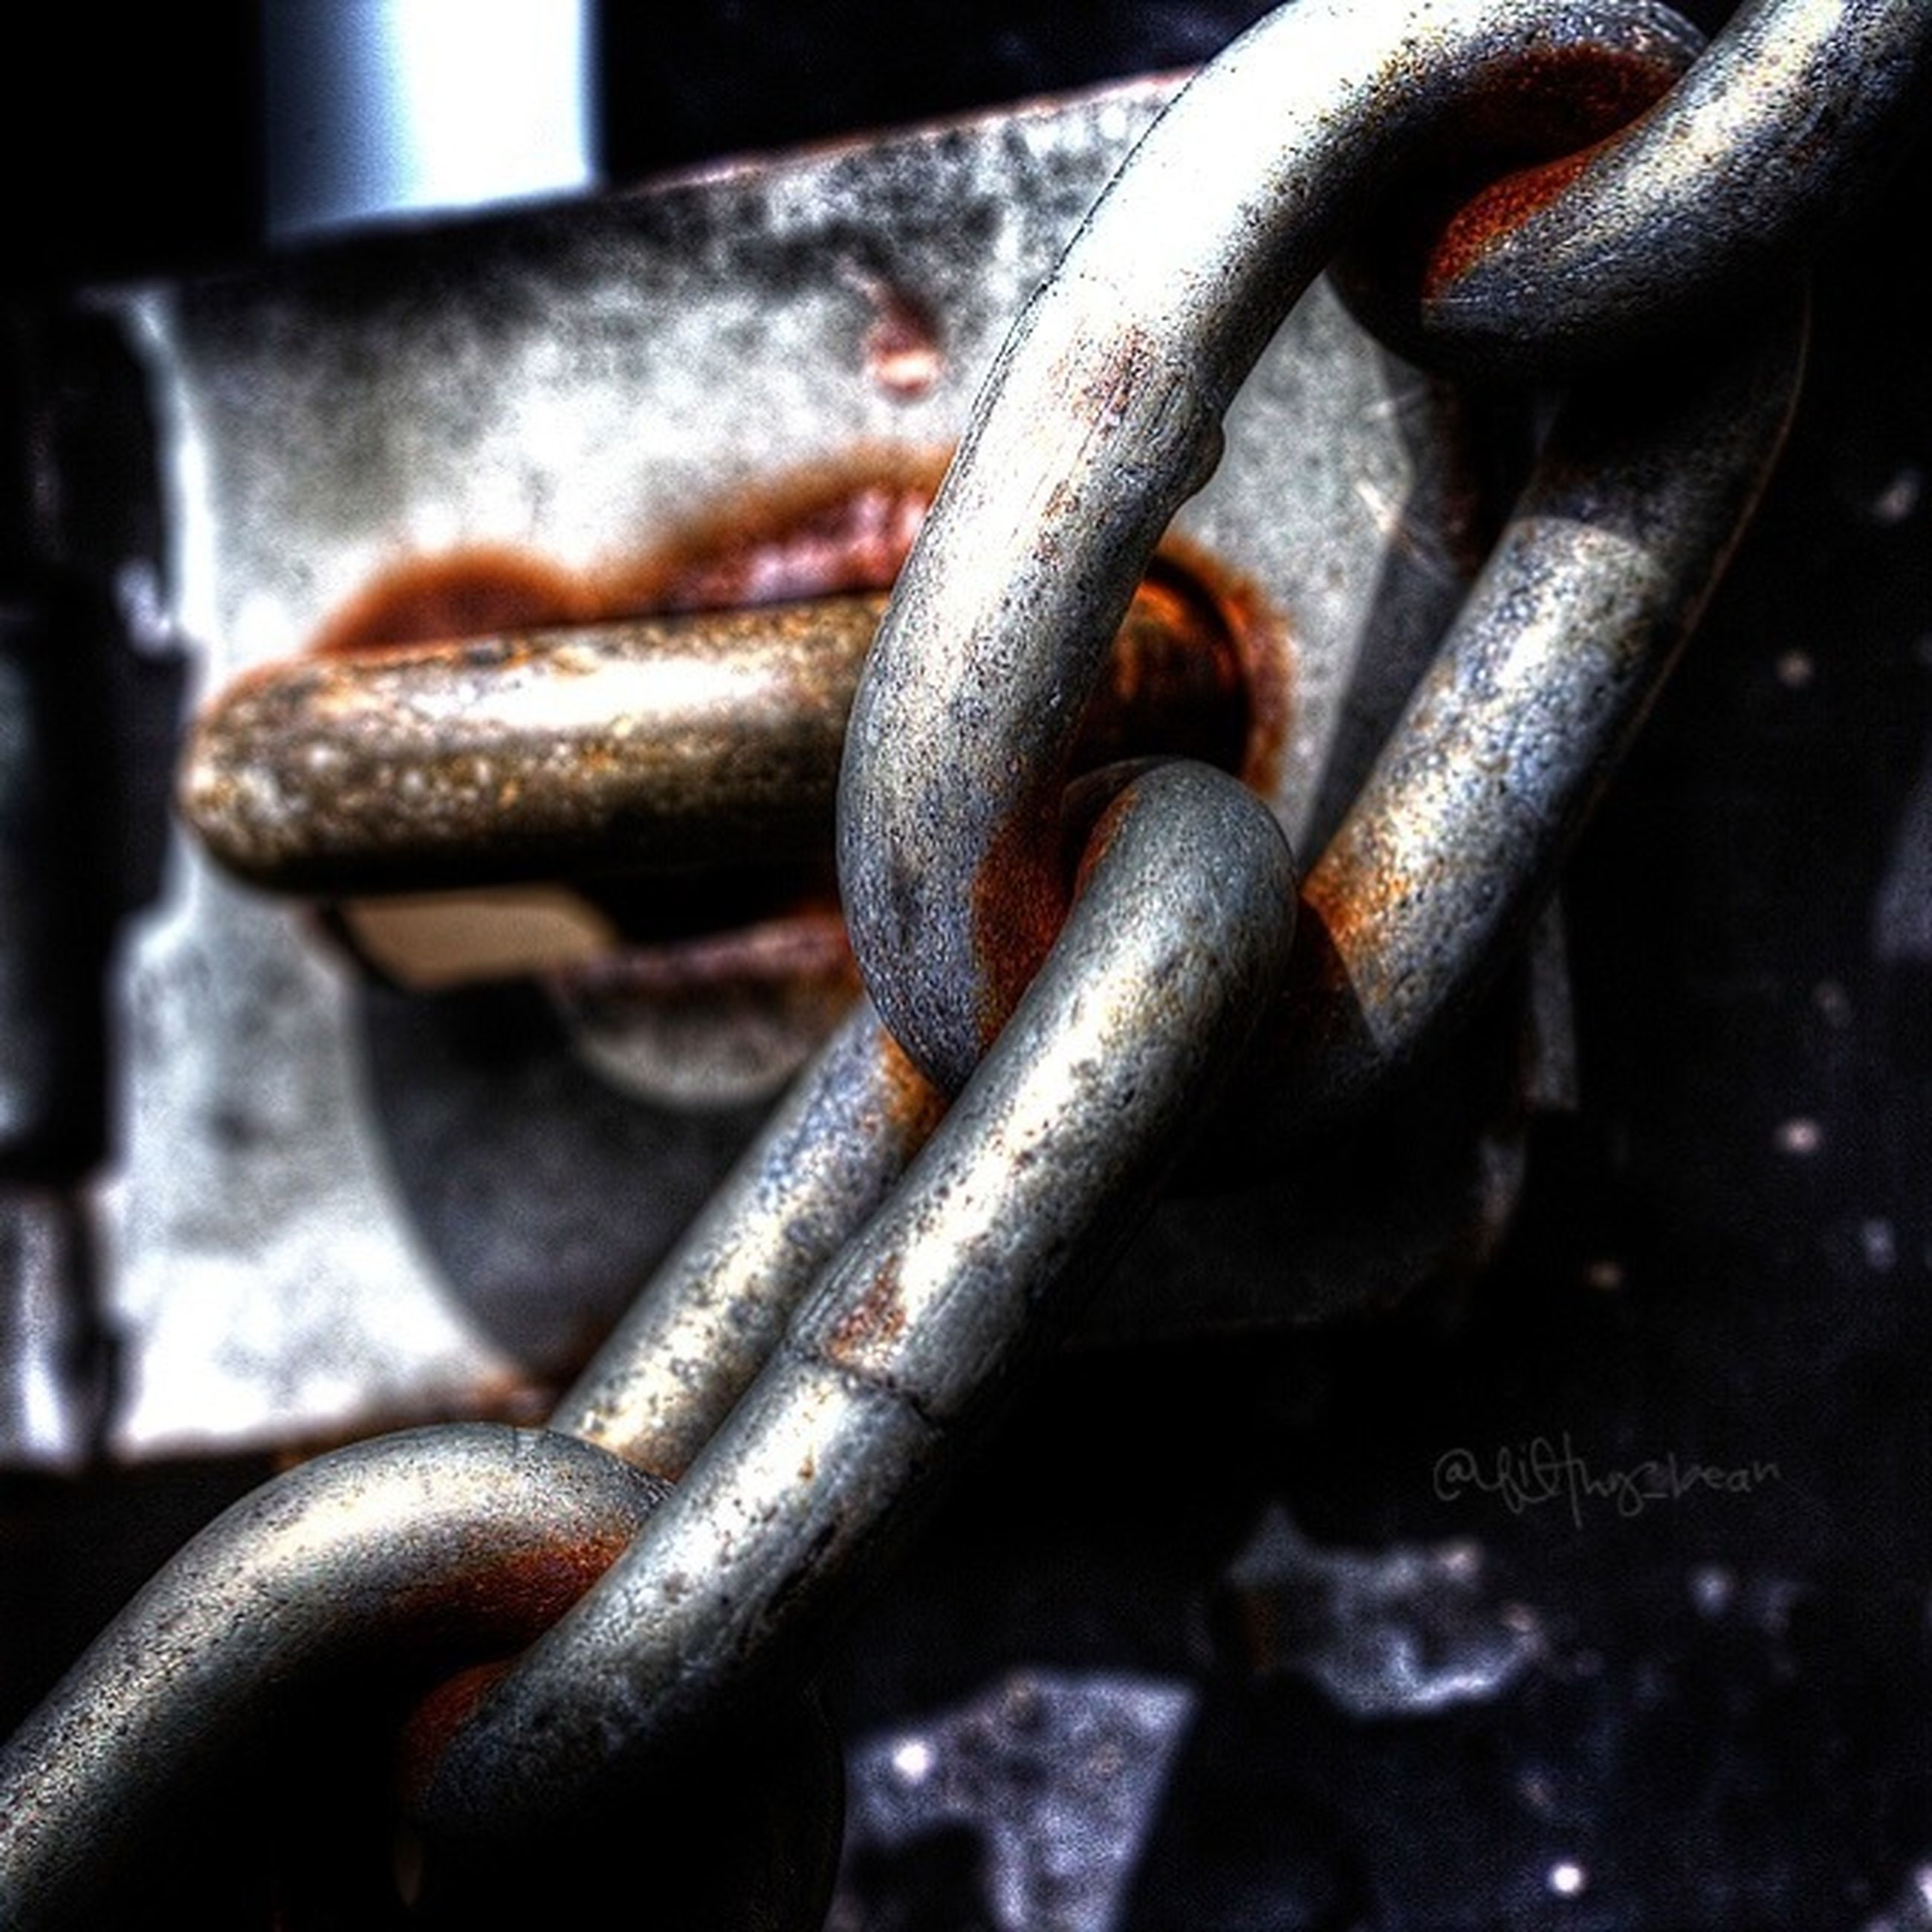 metal, rusty, metallic, close-up, chain, old, strength, focus on foreground, deterioration, weathered, security, run-down, iron - metal, safety, protection, connection, padlock, damaged, lock, obsolete